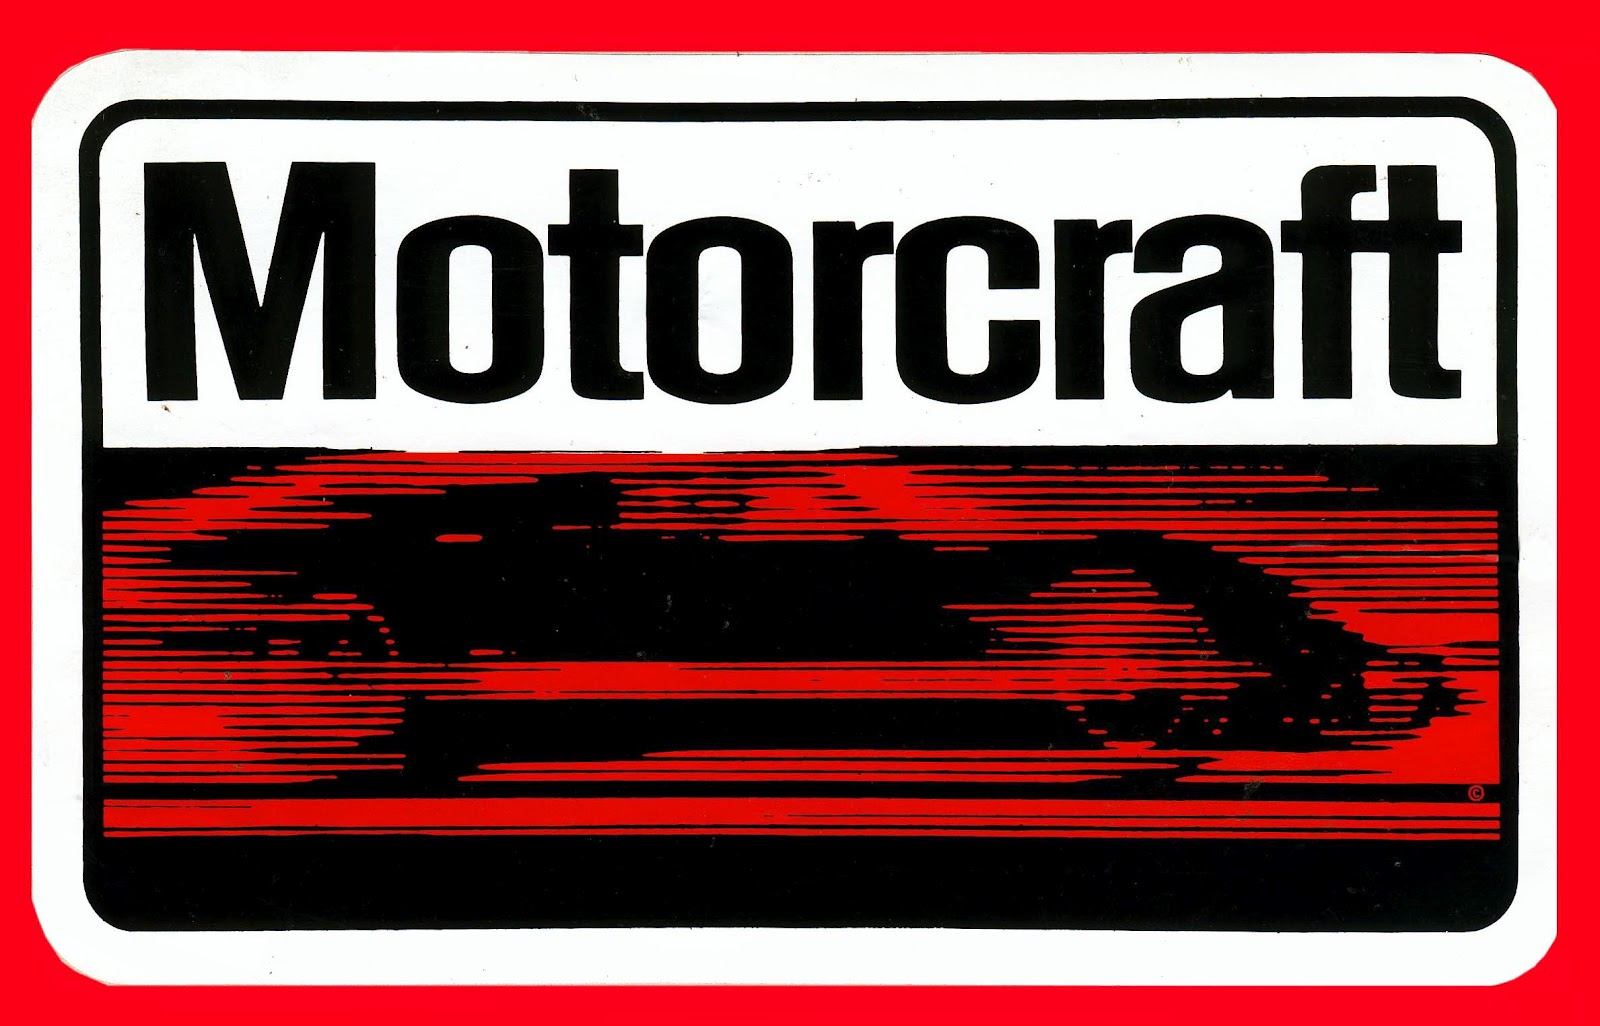 Gresham Ford Your Oregon Ford Dealership Why Are Motorcraft Parts Important For Your Ford Vehicle